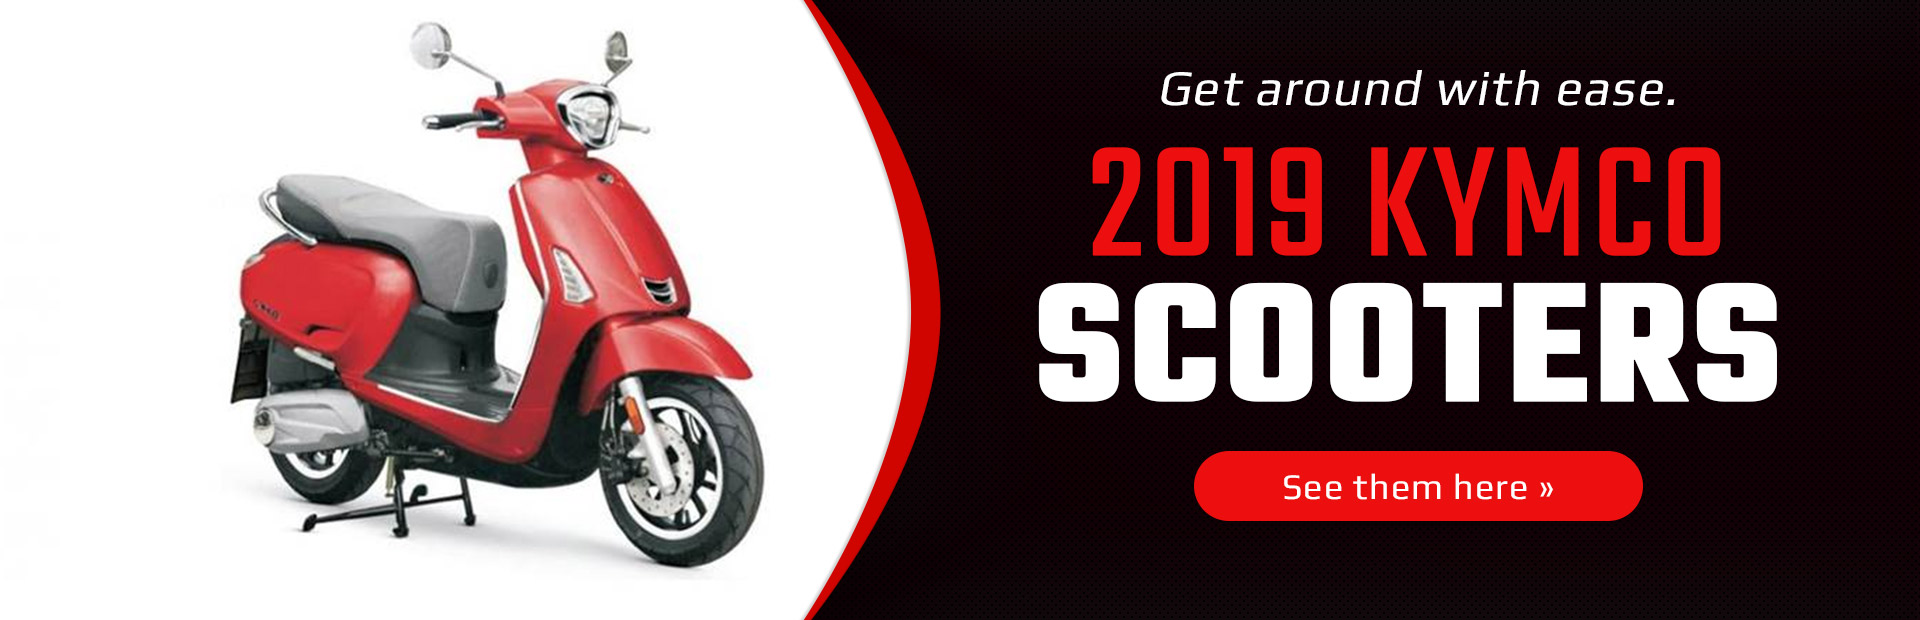 2019 KYMCO Scooters: Click here to view the models.